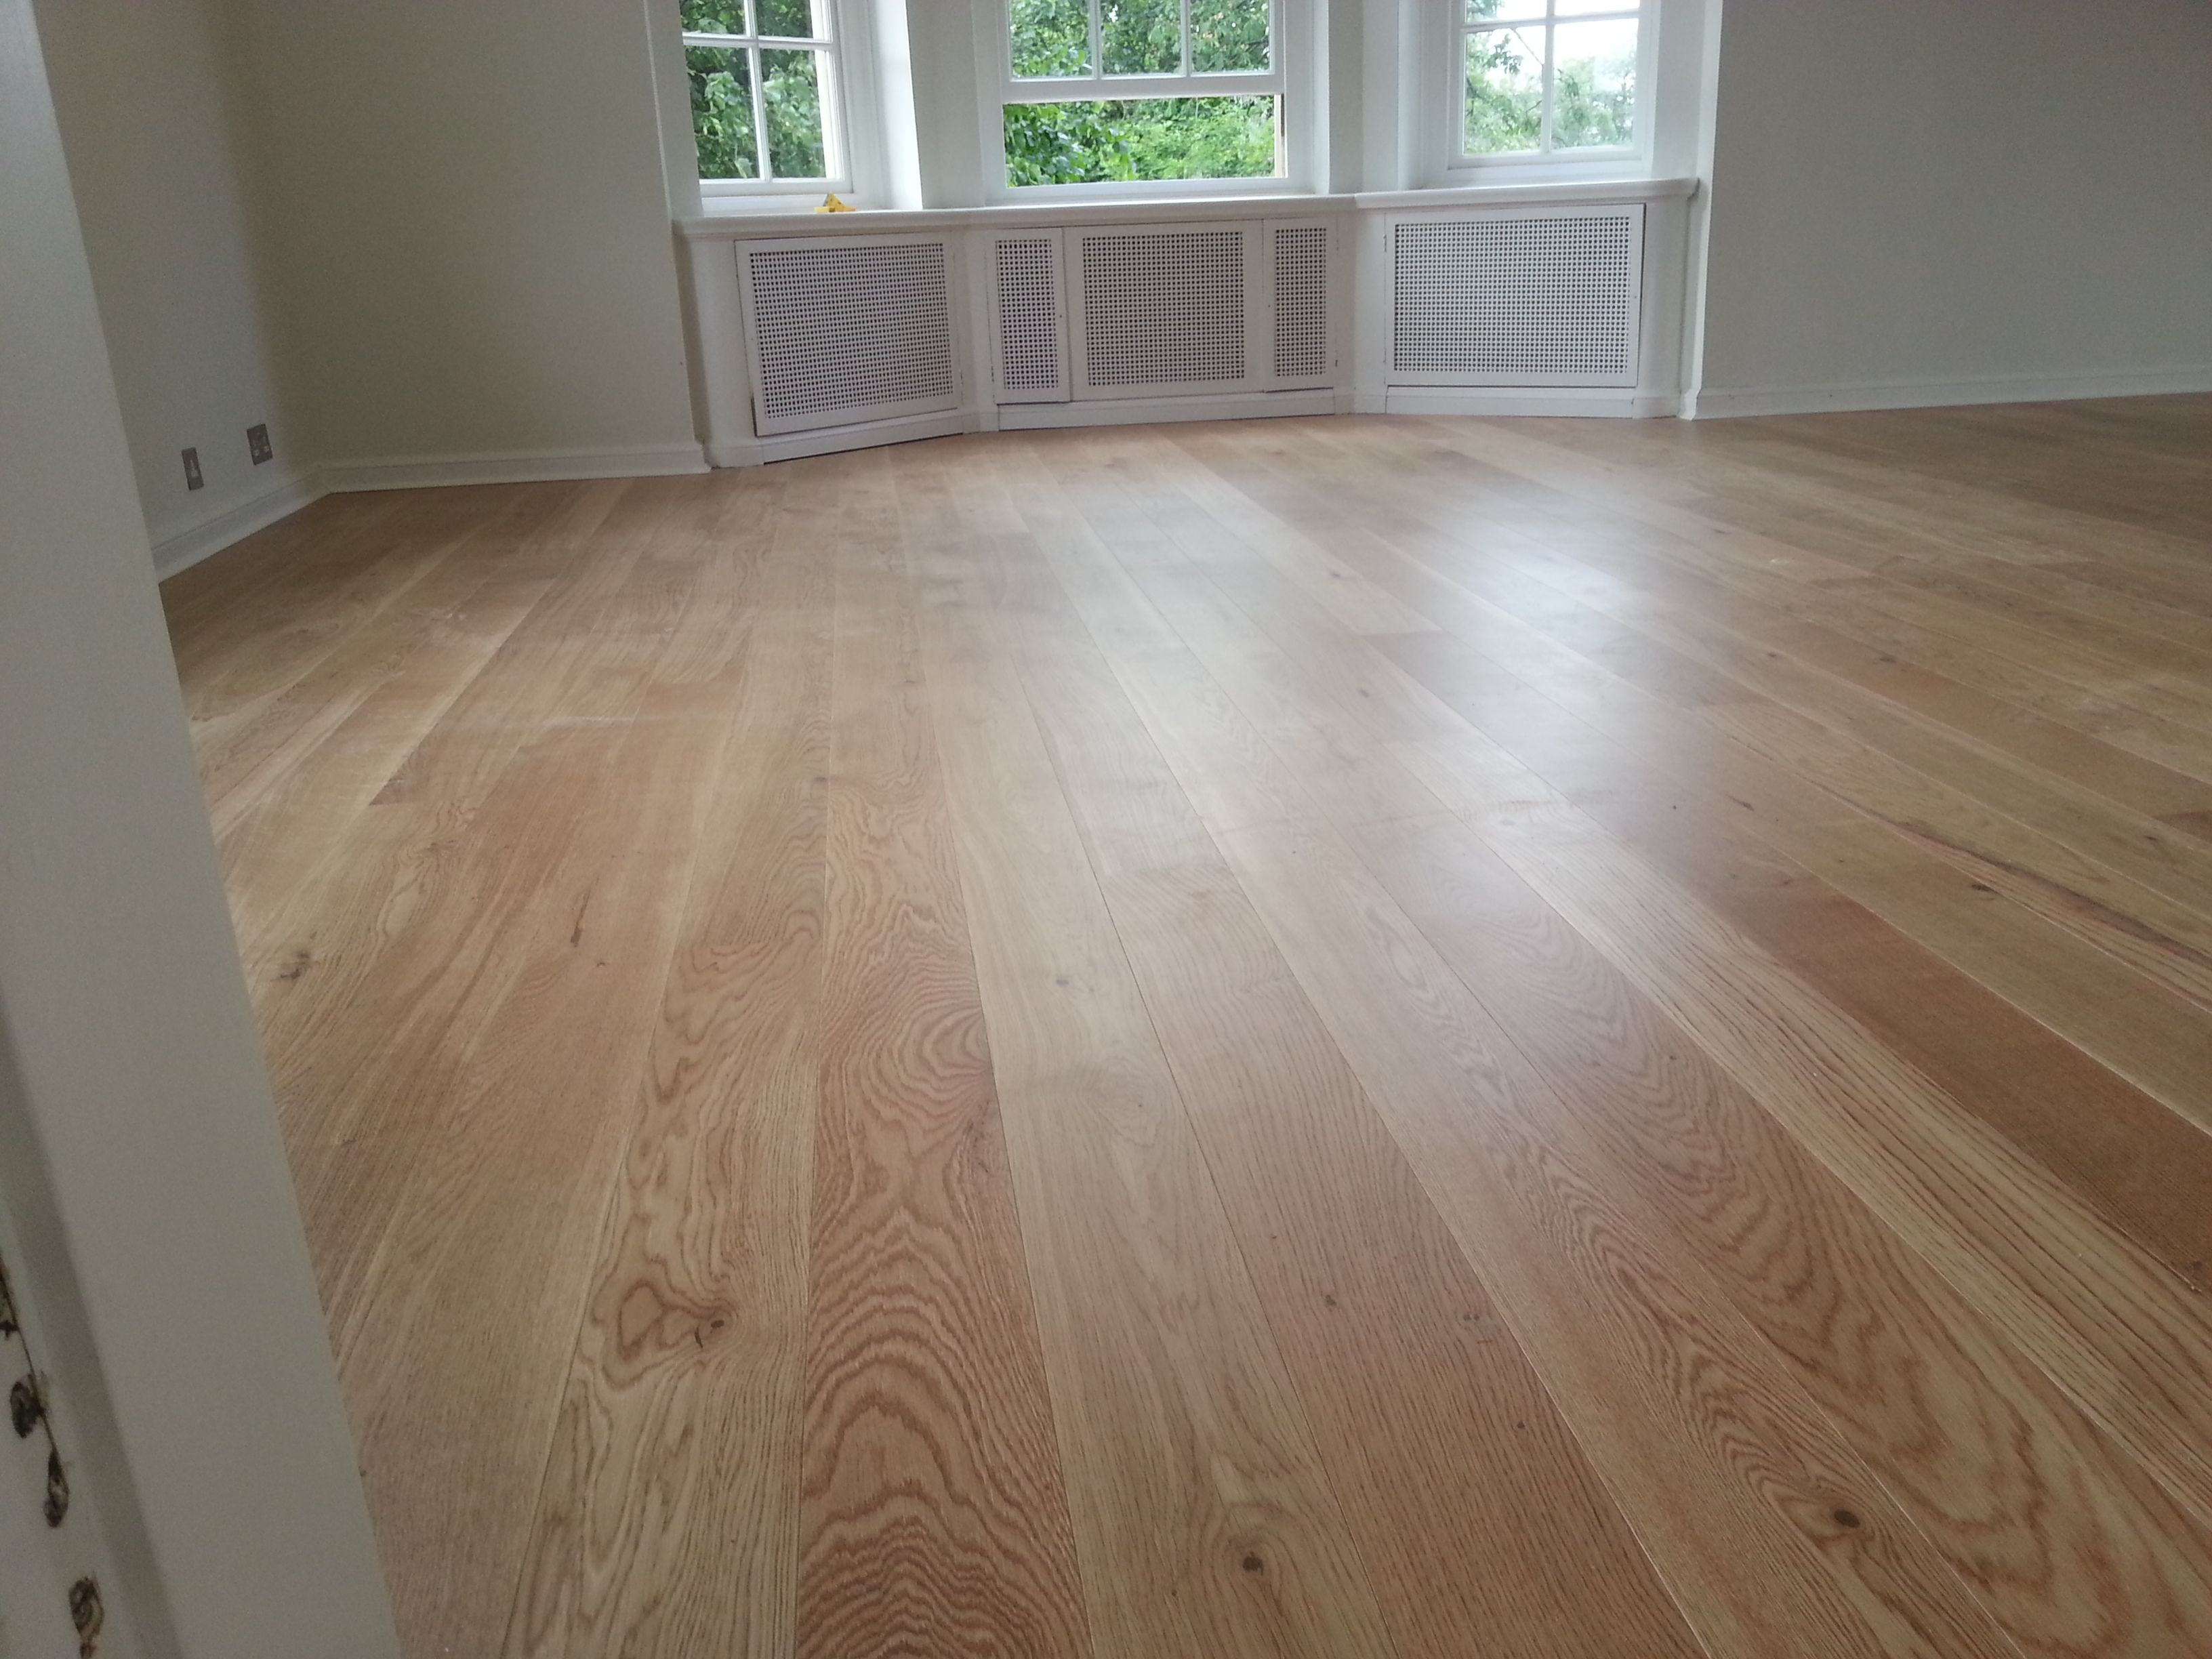 160mm Unfinished Solid Oak Wide Planks 20mm Thickness